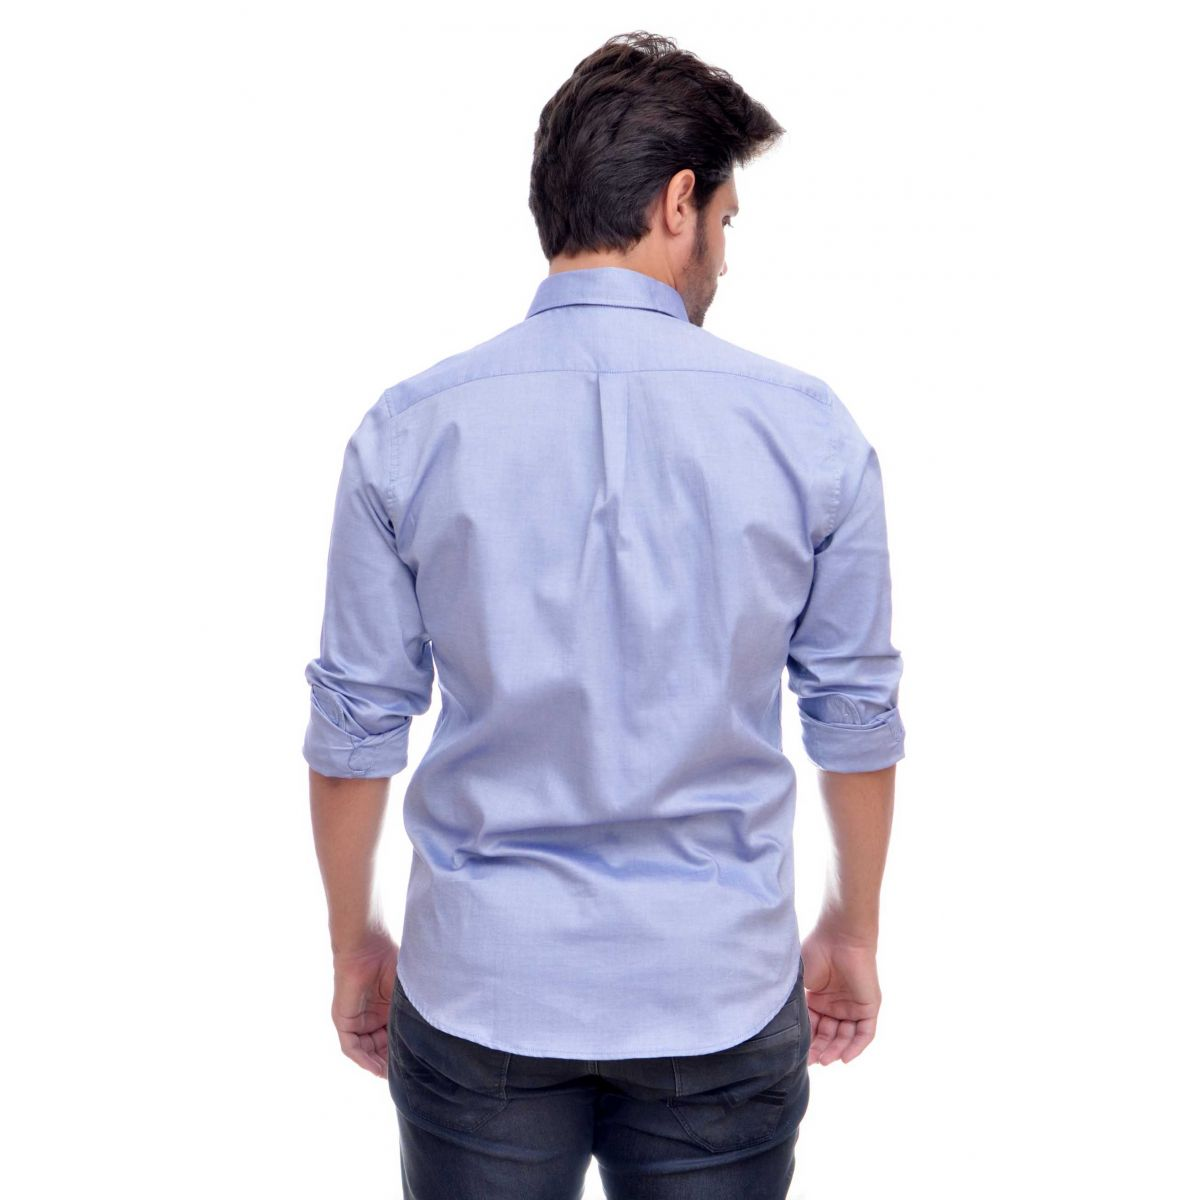 Camisa Social RL Oxford Azul Colored Regular Fit  - Ca Brasileira